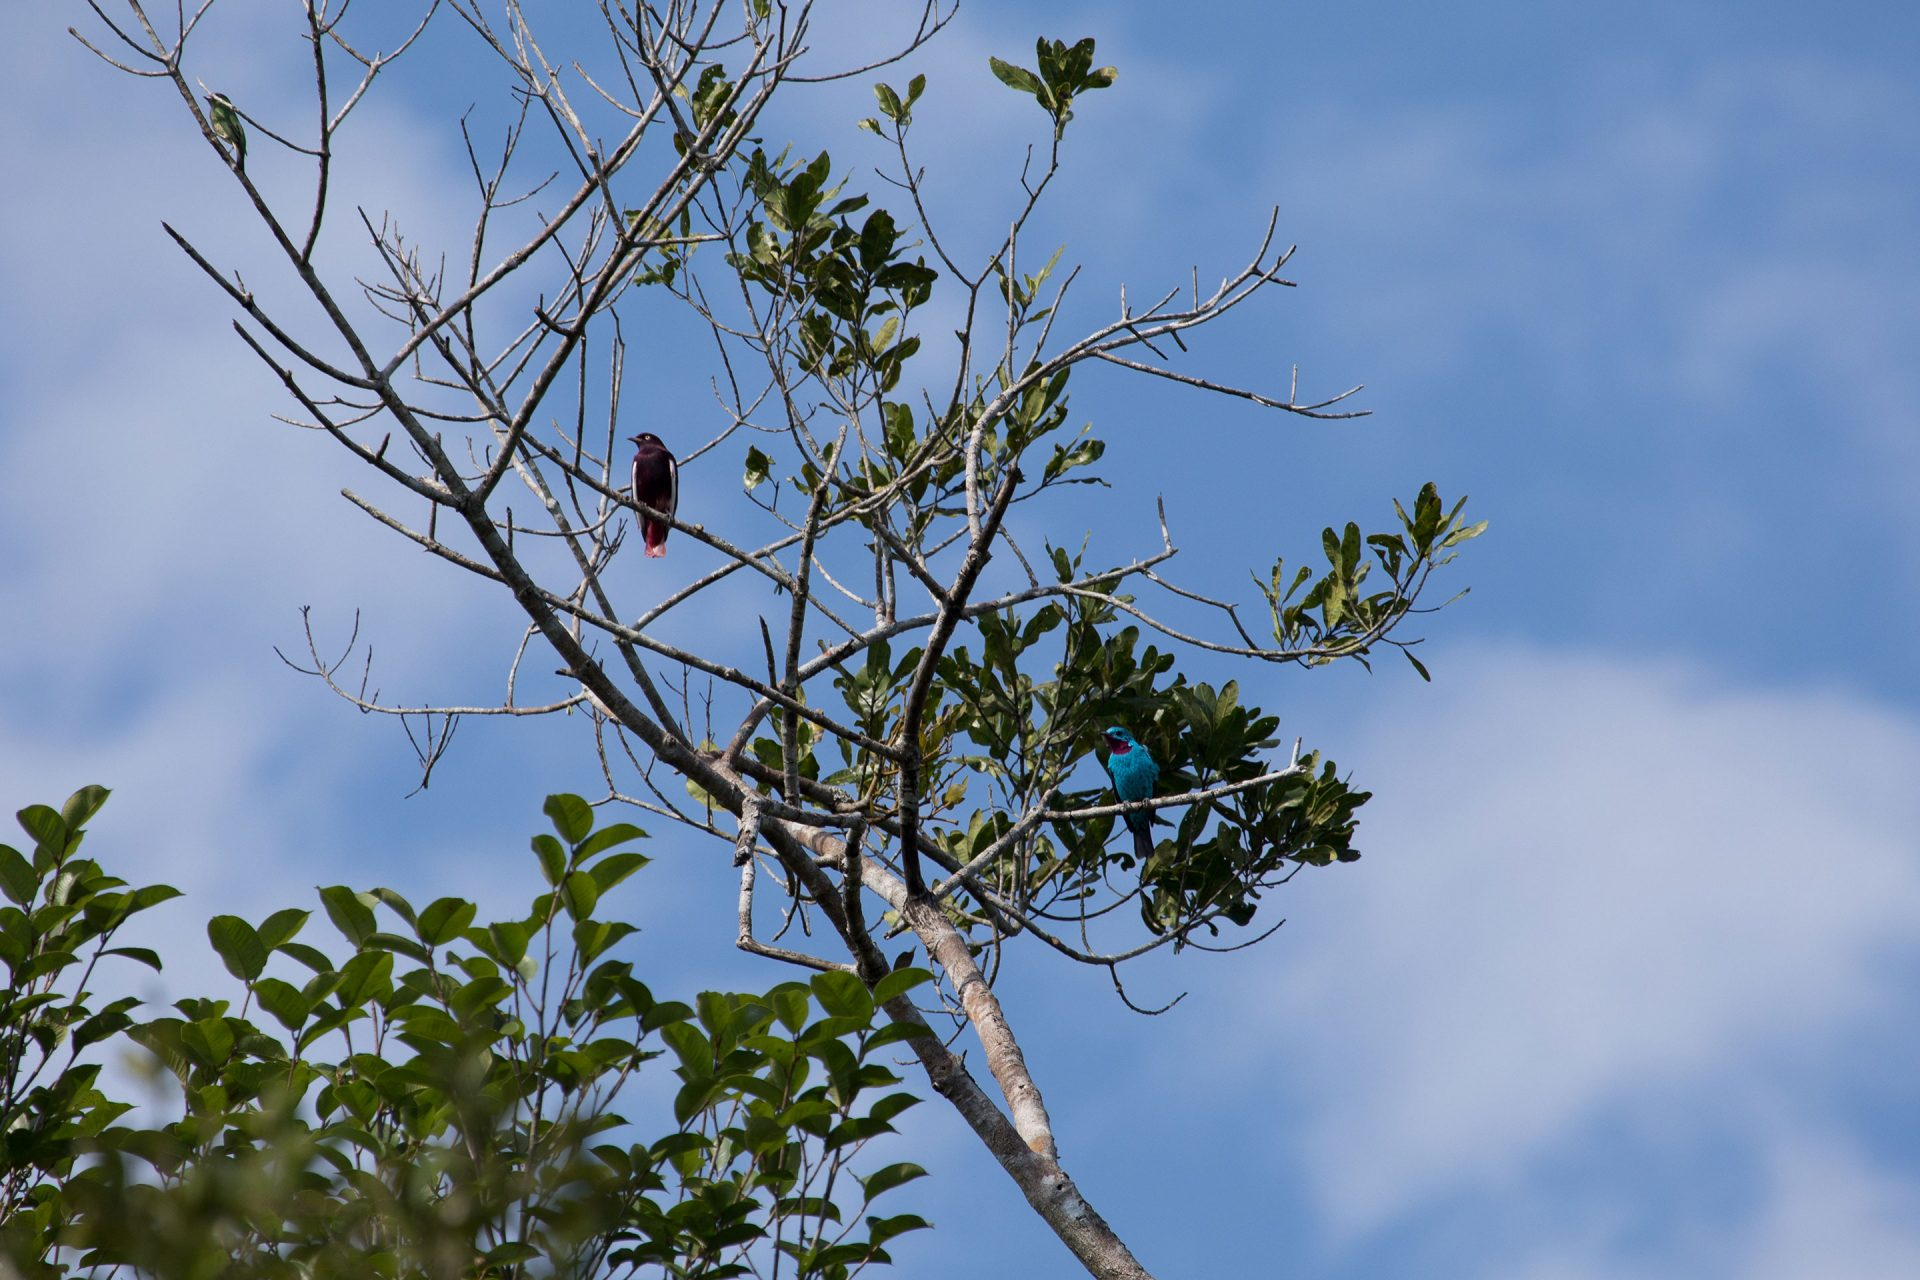 Two cotinga species one tree! Pompadour Cotinga (left) and Spangled Cotinga (right).